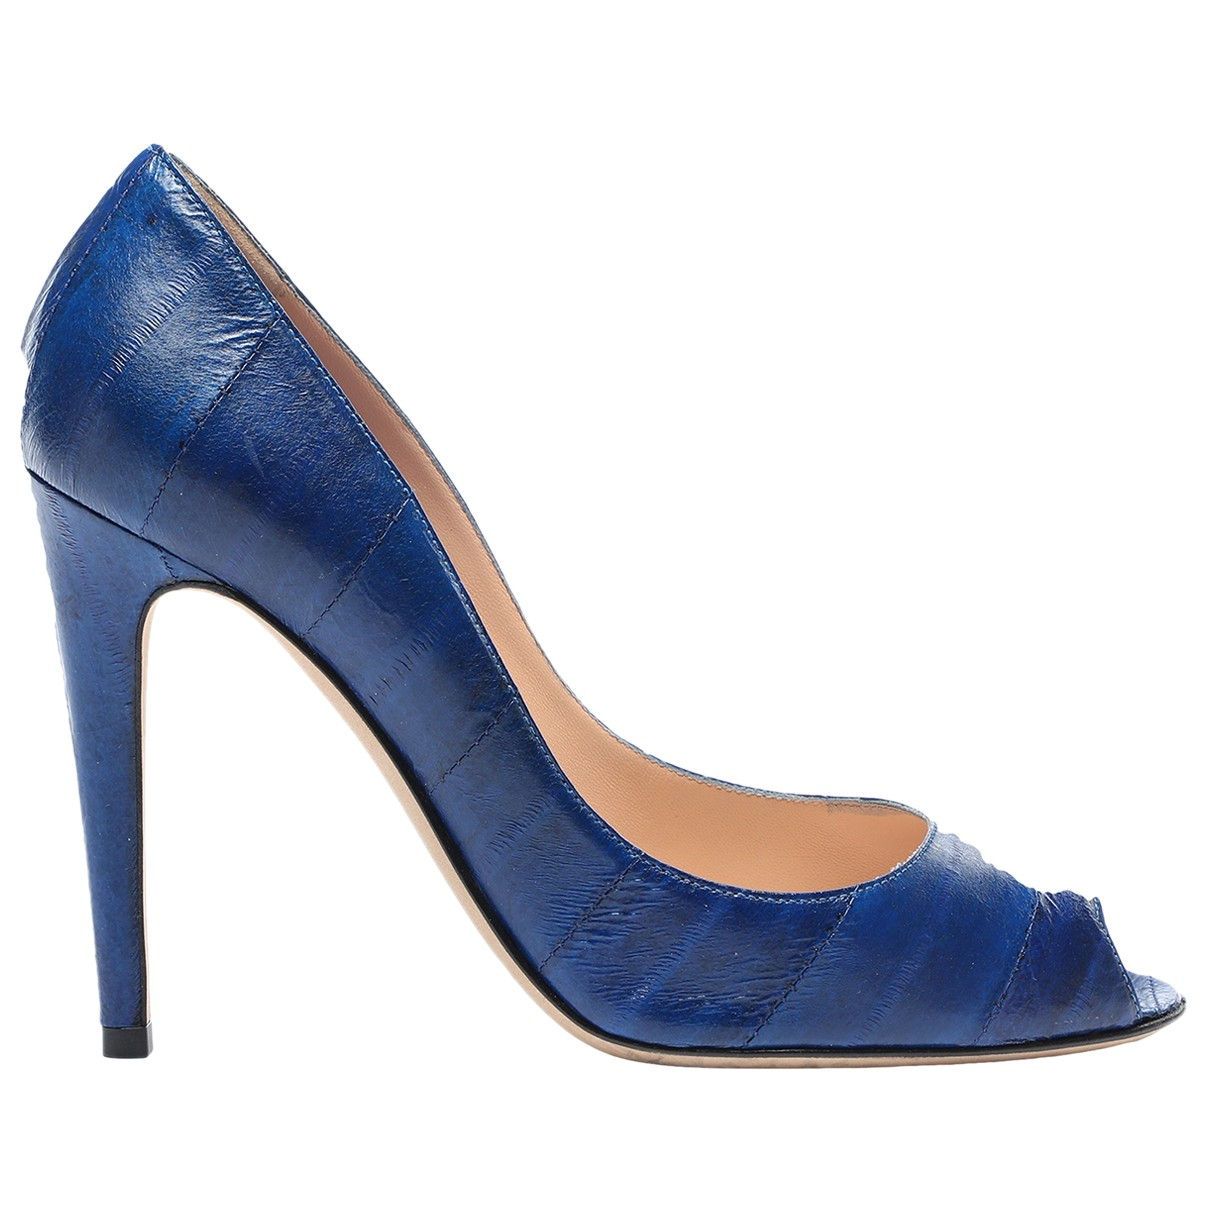 Sergio Rossi \N Pumps in  Blau Aal